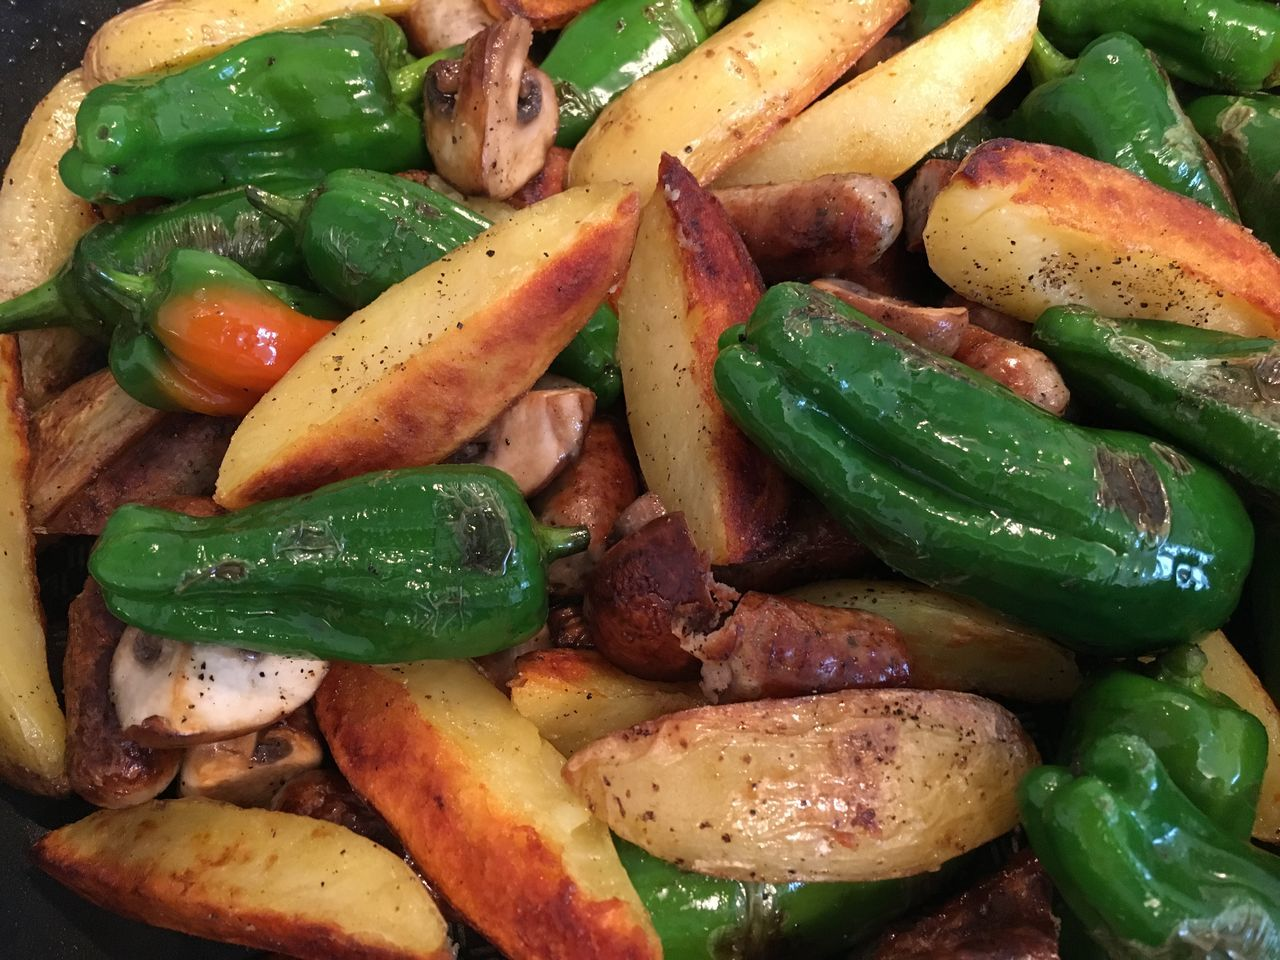 Pan-cooked meal Backgrounds Champignon Food Food And Drink Full Frame Green Color Healthy Eating Mushroom Pan Pepper Pimientos De Padron Ready-to-eat Roasted Potatoes Sausage Vegetable